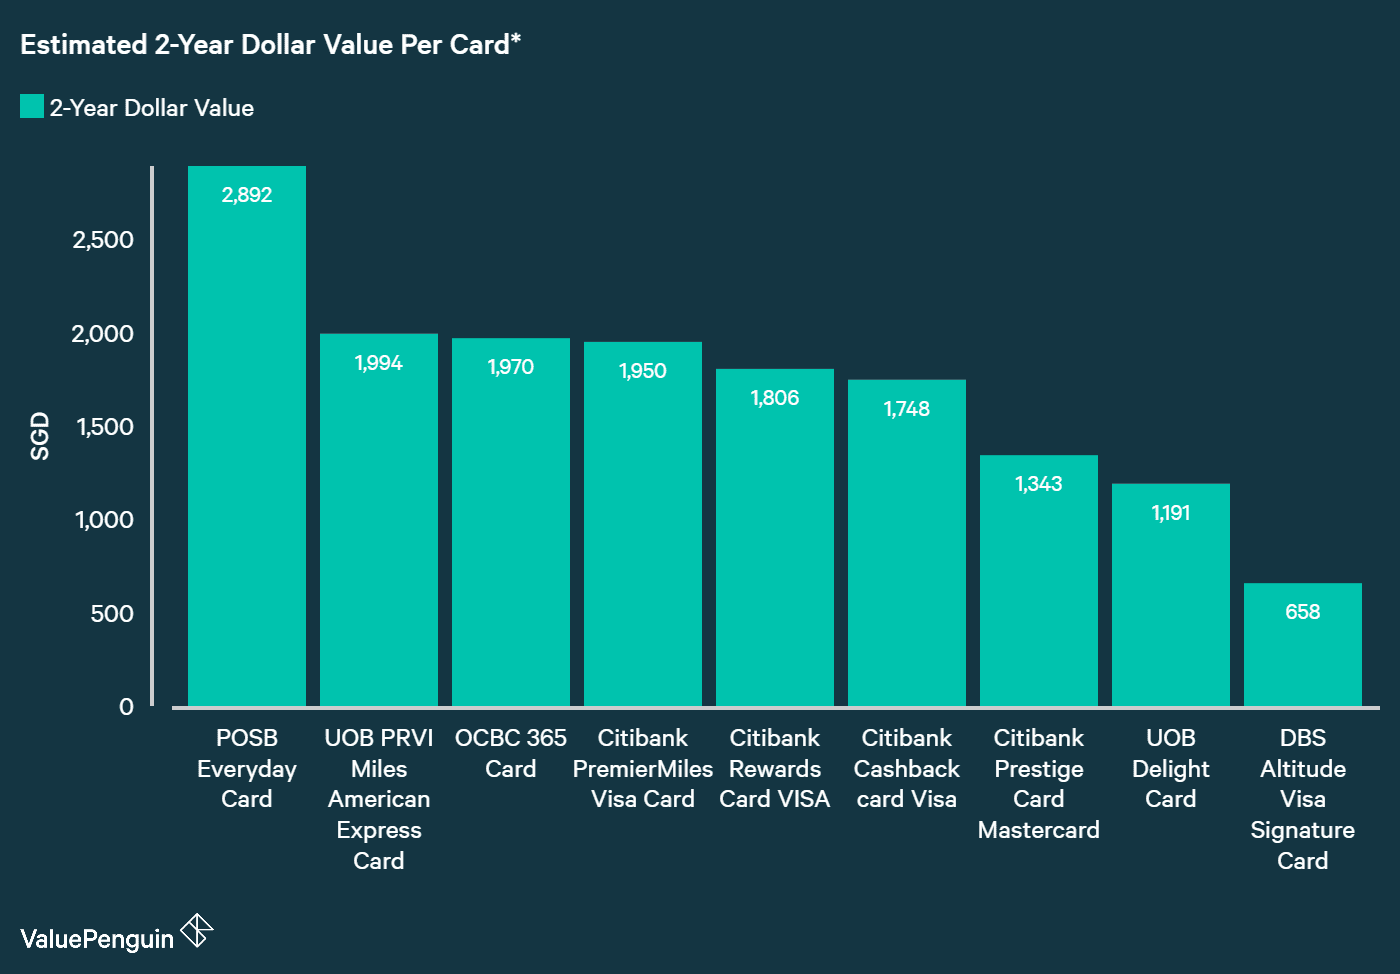 Comparing Dollar Value of Best Citibank Cards with Similar Cards from Other banks